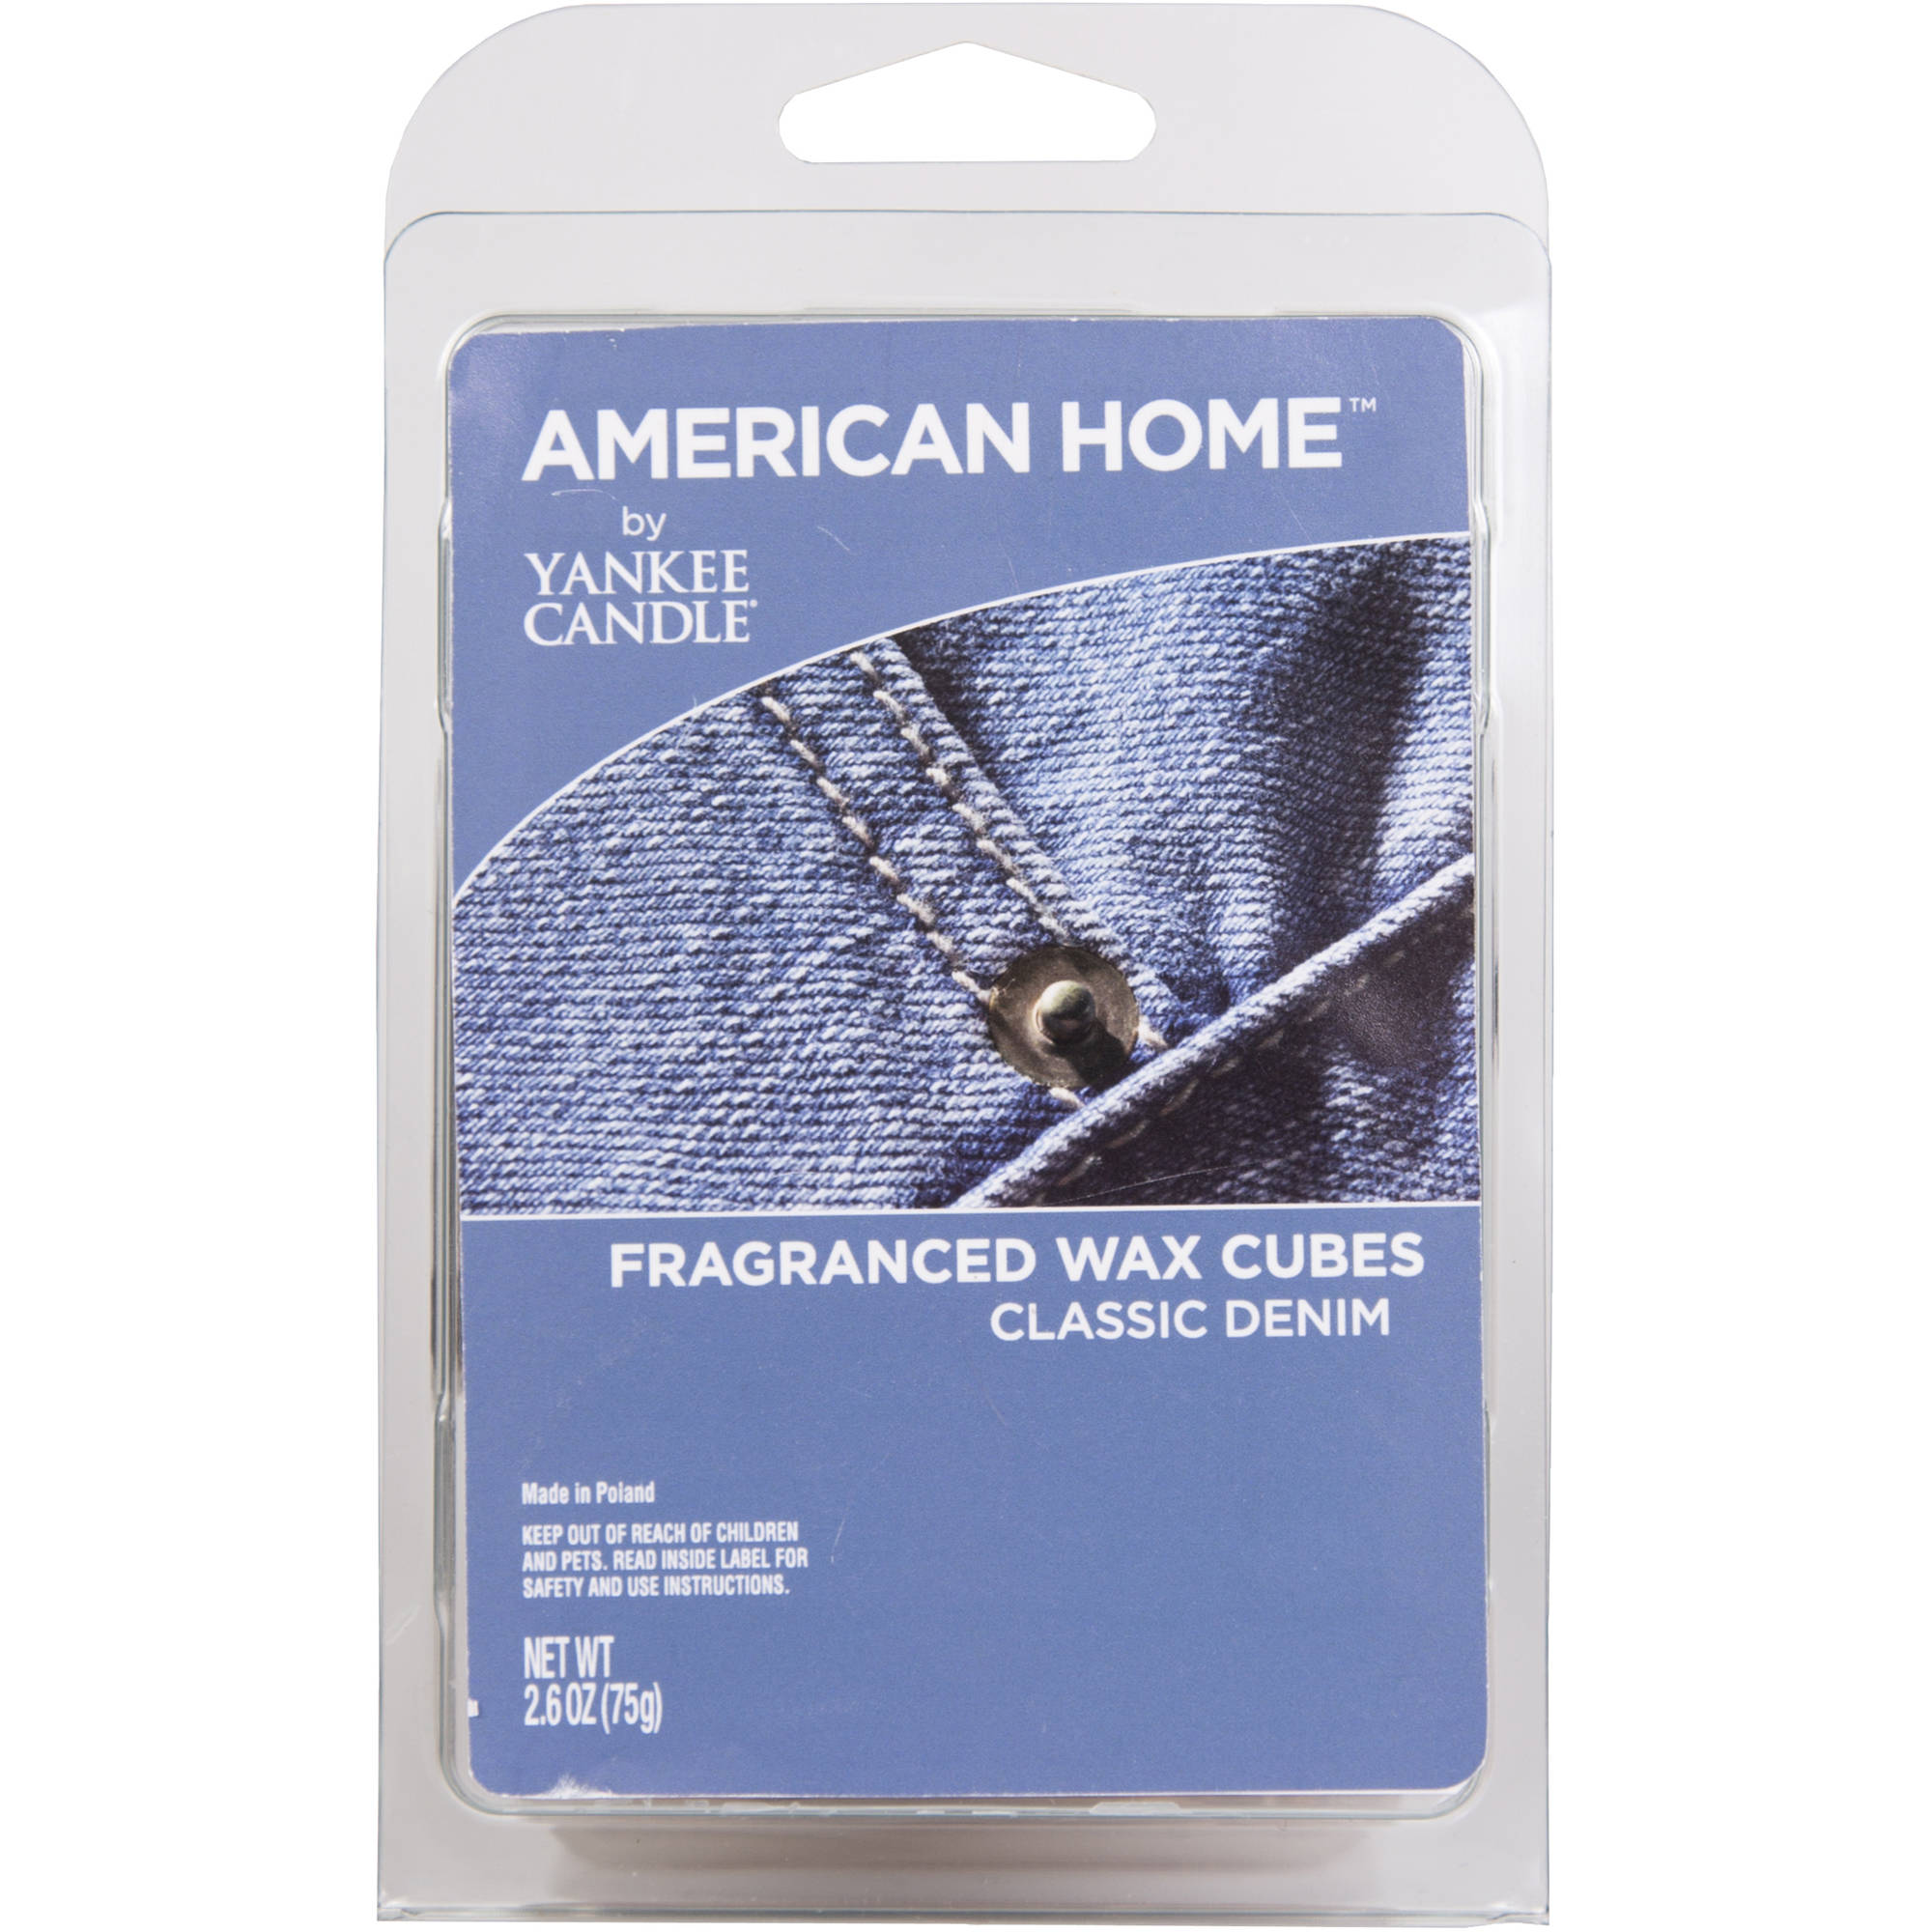 American Home by Yankee Candle Classic Denim, 2.6 oz Fragranced Wax Cubes